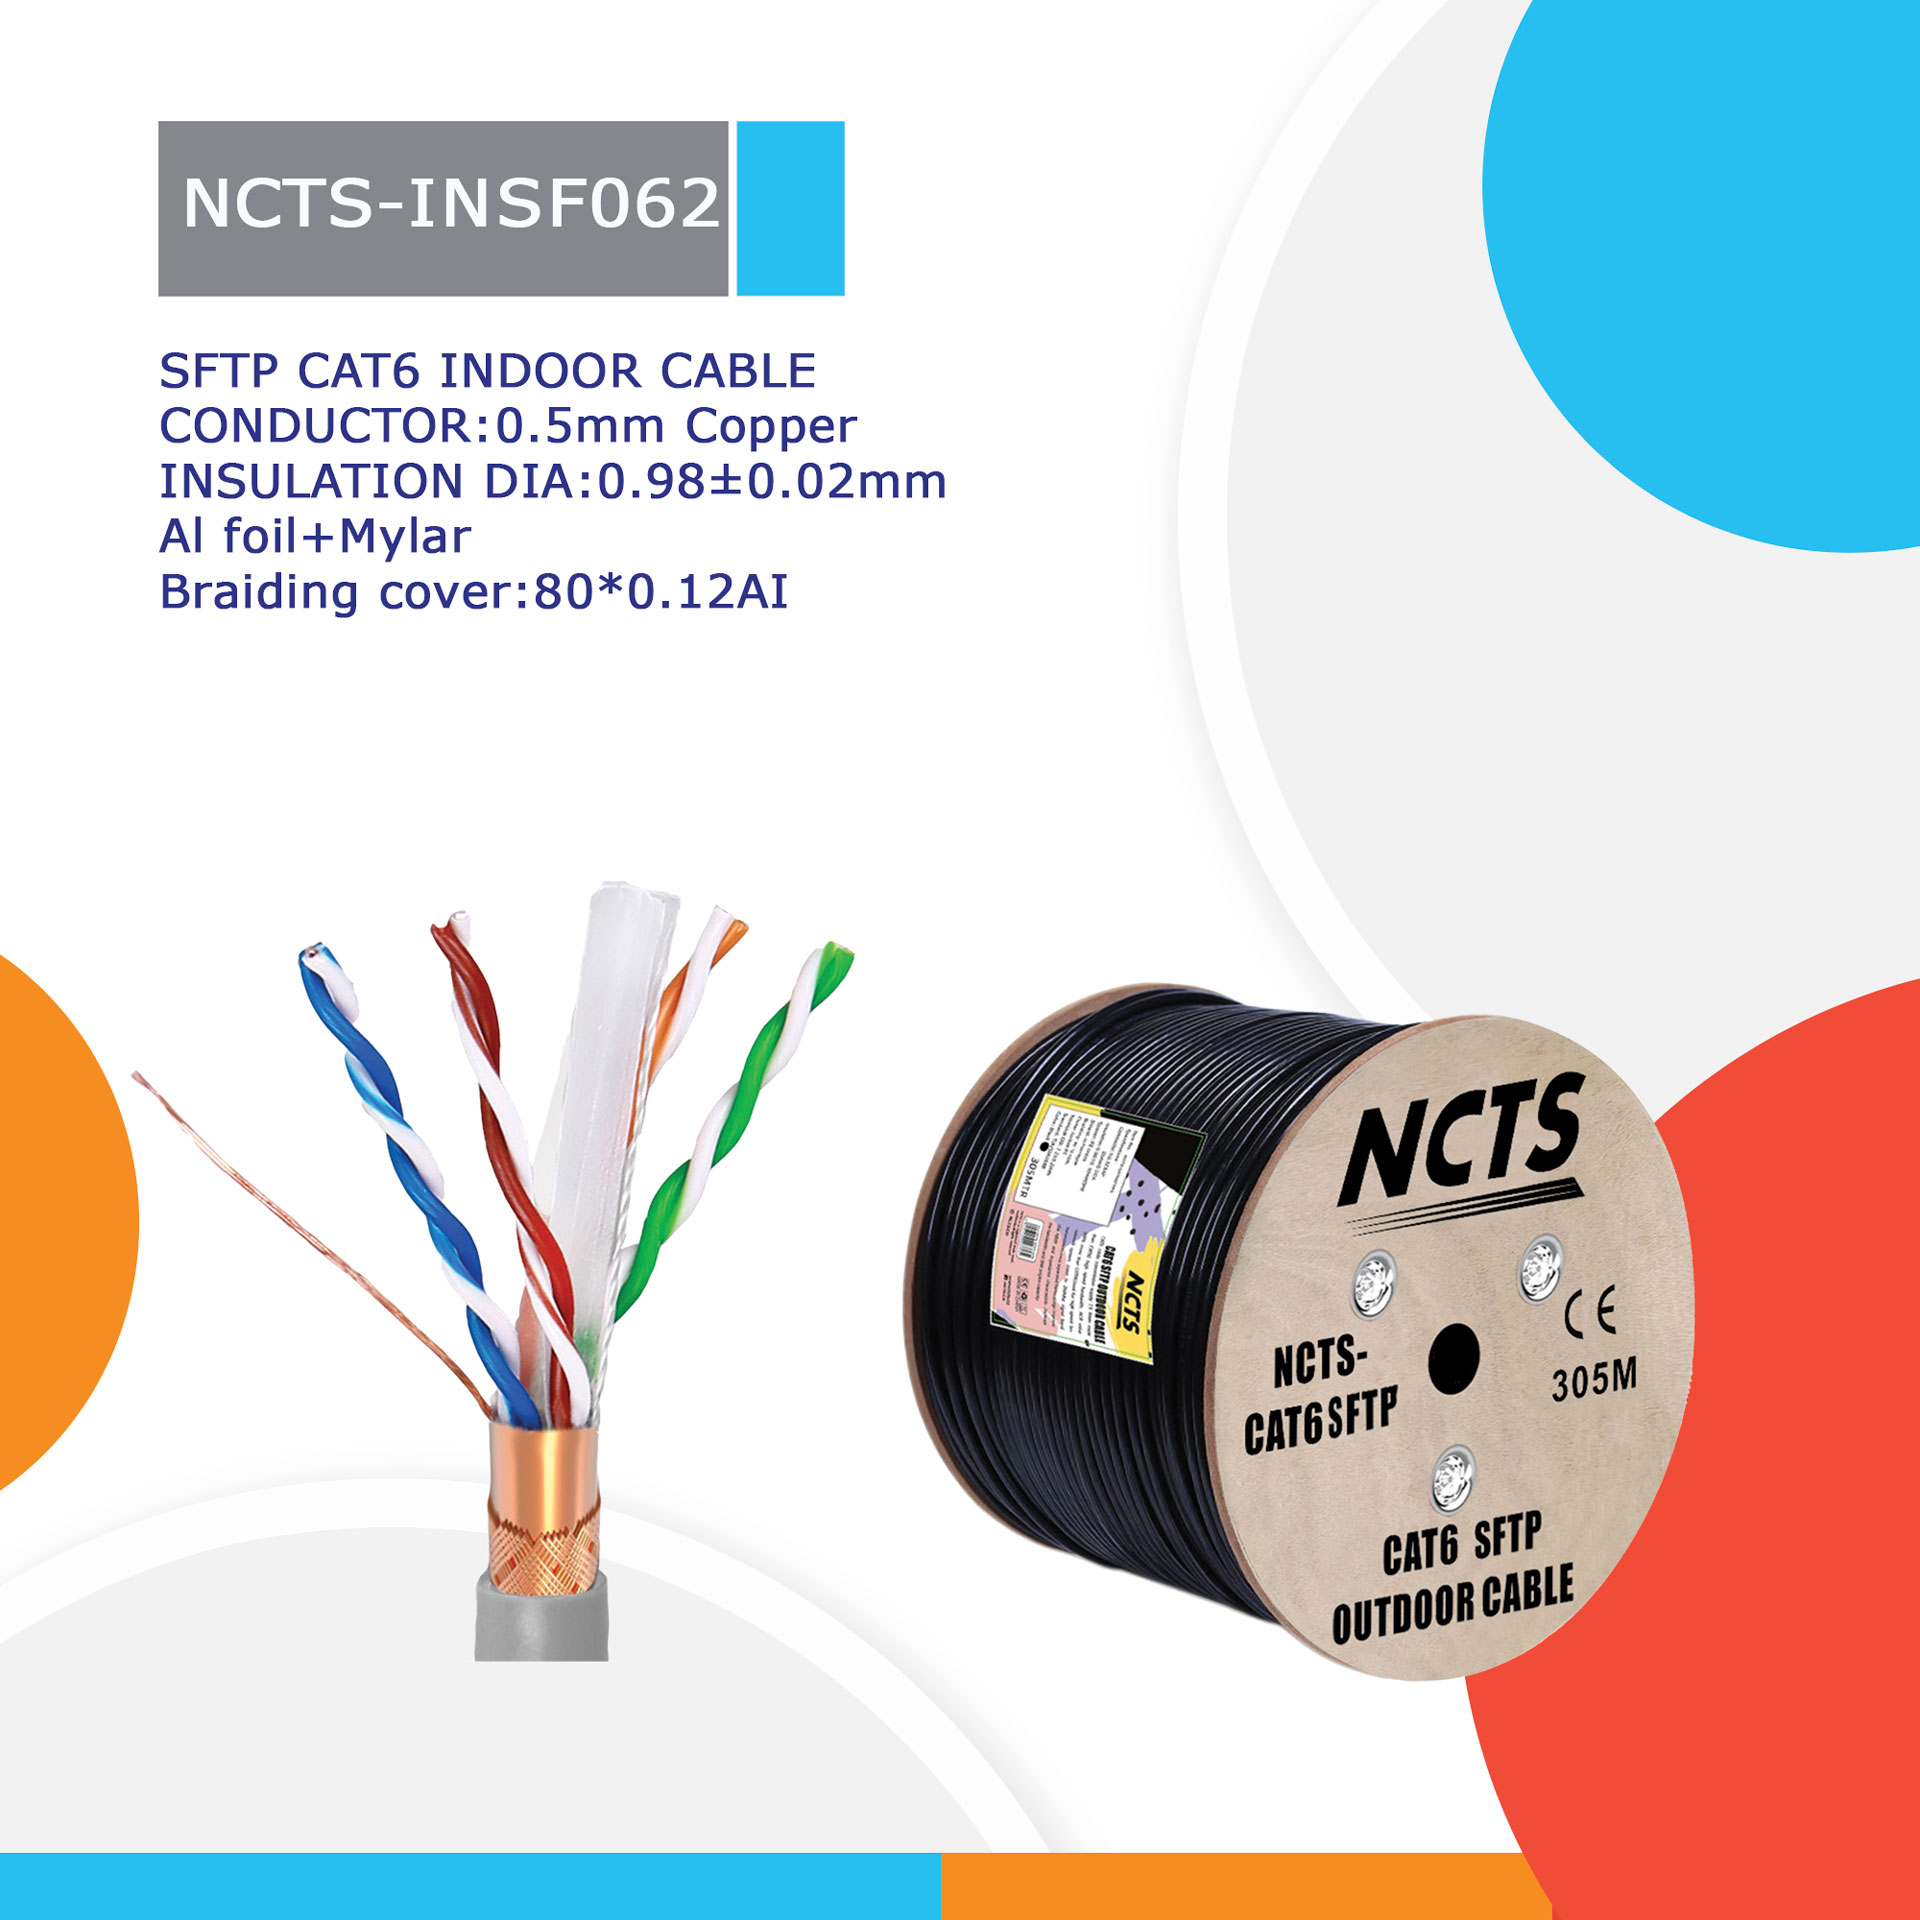 NCTS-INSF062